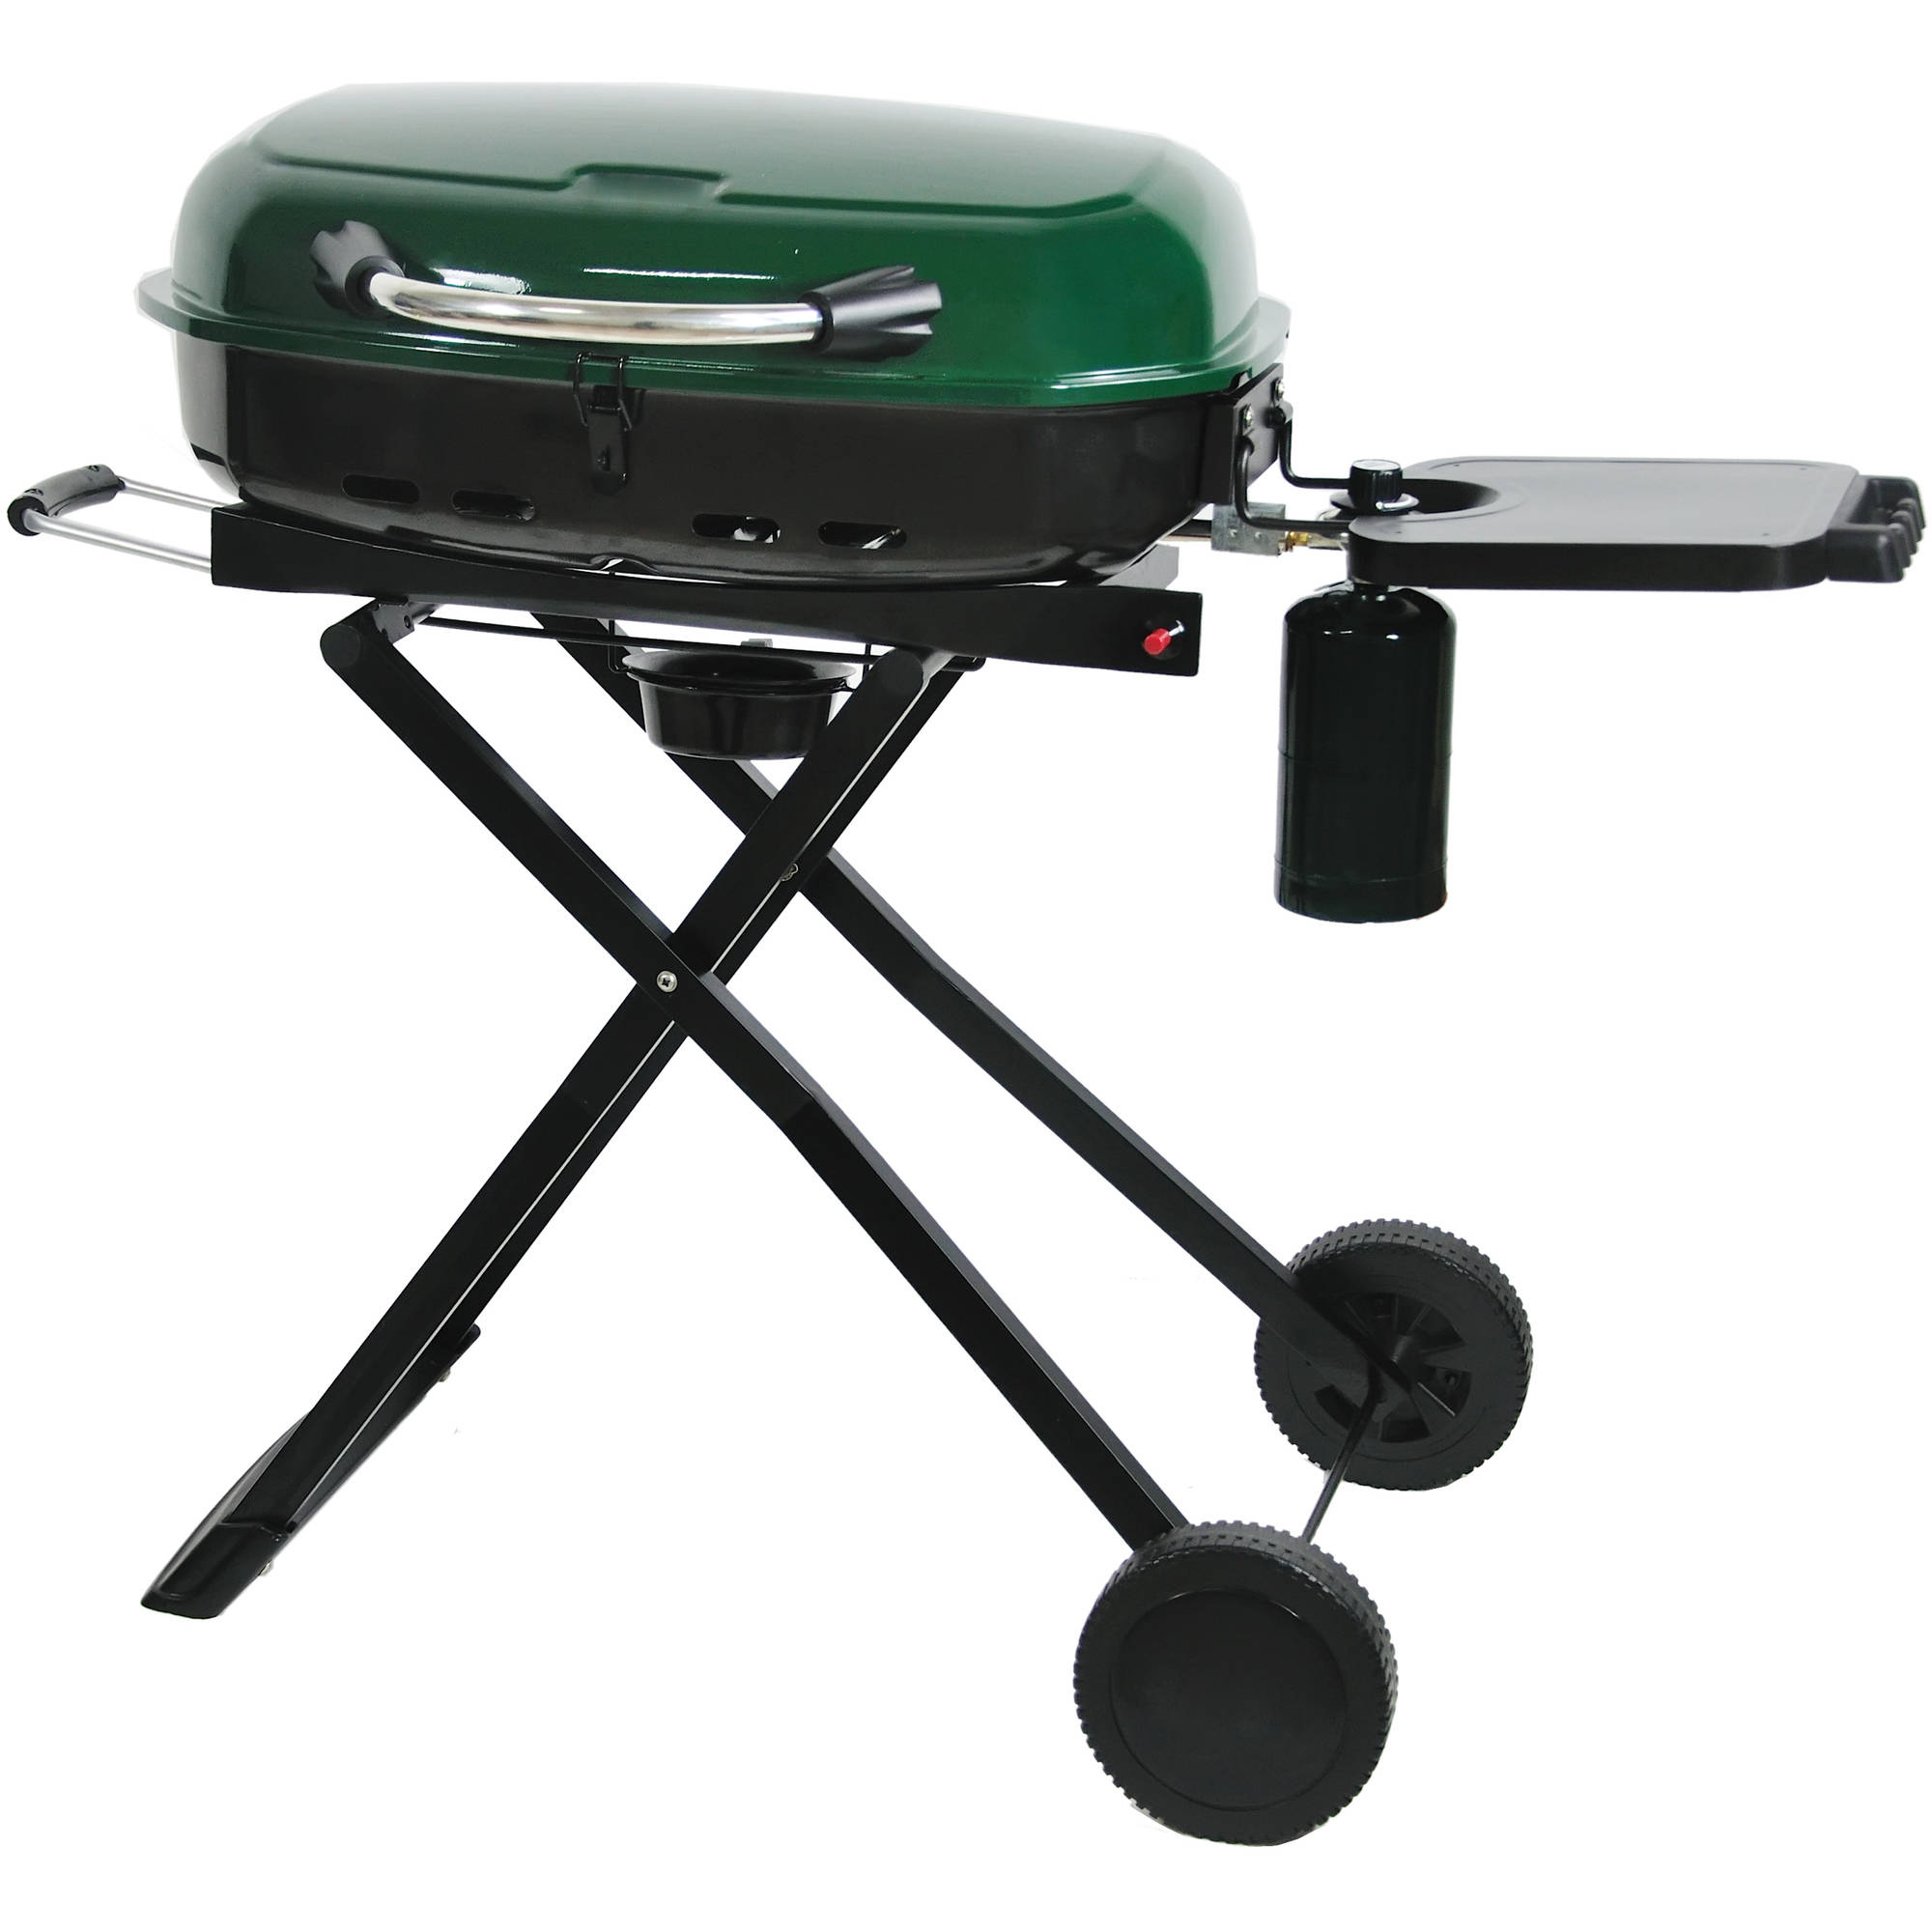 RevoAce 15,000 BTU LP Gas Tailgating Grill, Hunter Lodge Green